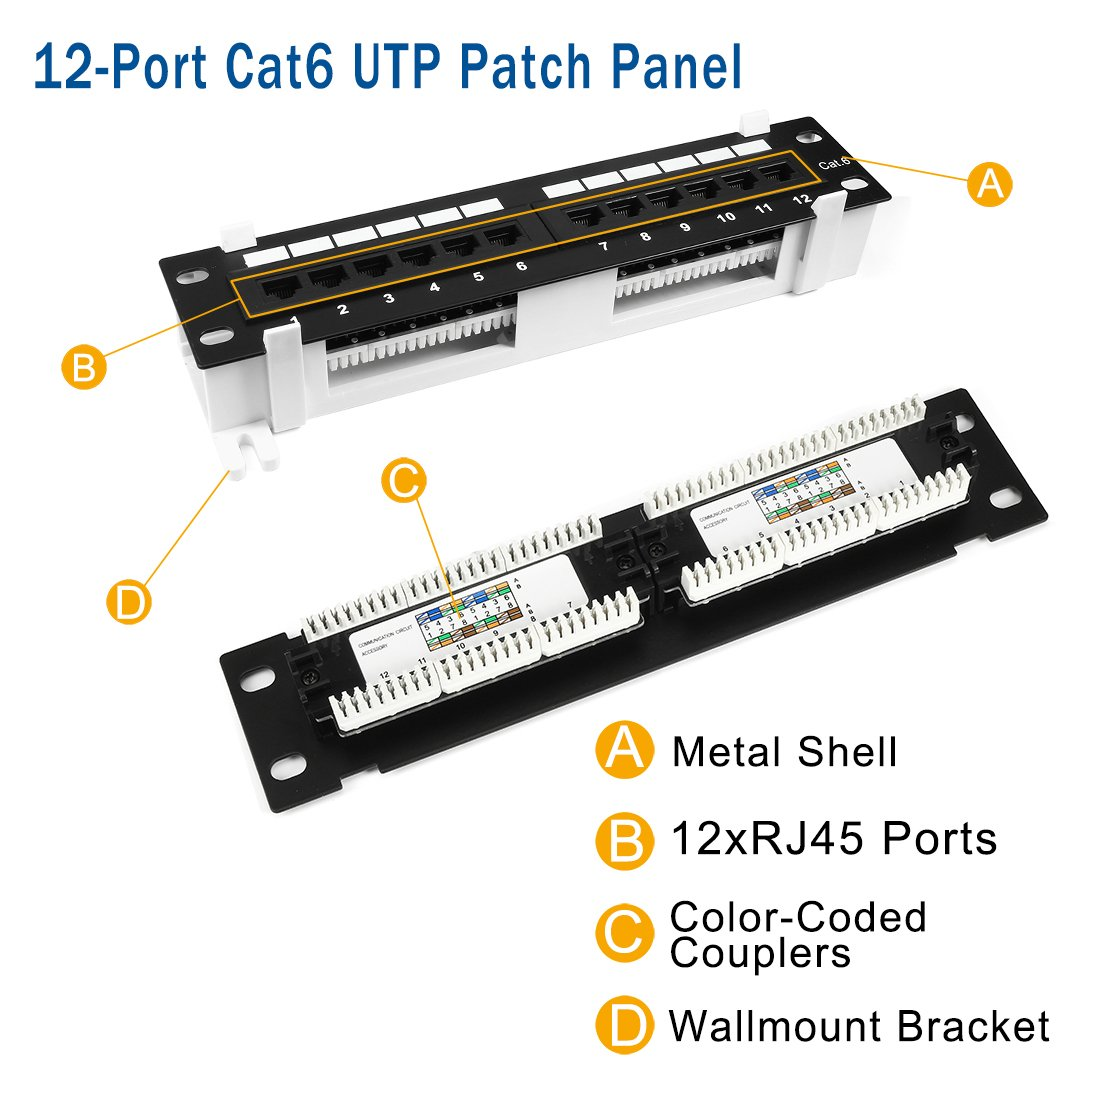 Uxcell 12 Port Cat6 Rj45 Ethernet Patch Panel Utp Wiring Diagram Cat5e Cat3 Unsheilded 10 Inch With Wallmount Bracket Black Computers Accessories